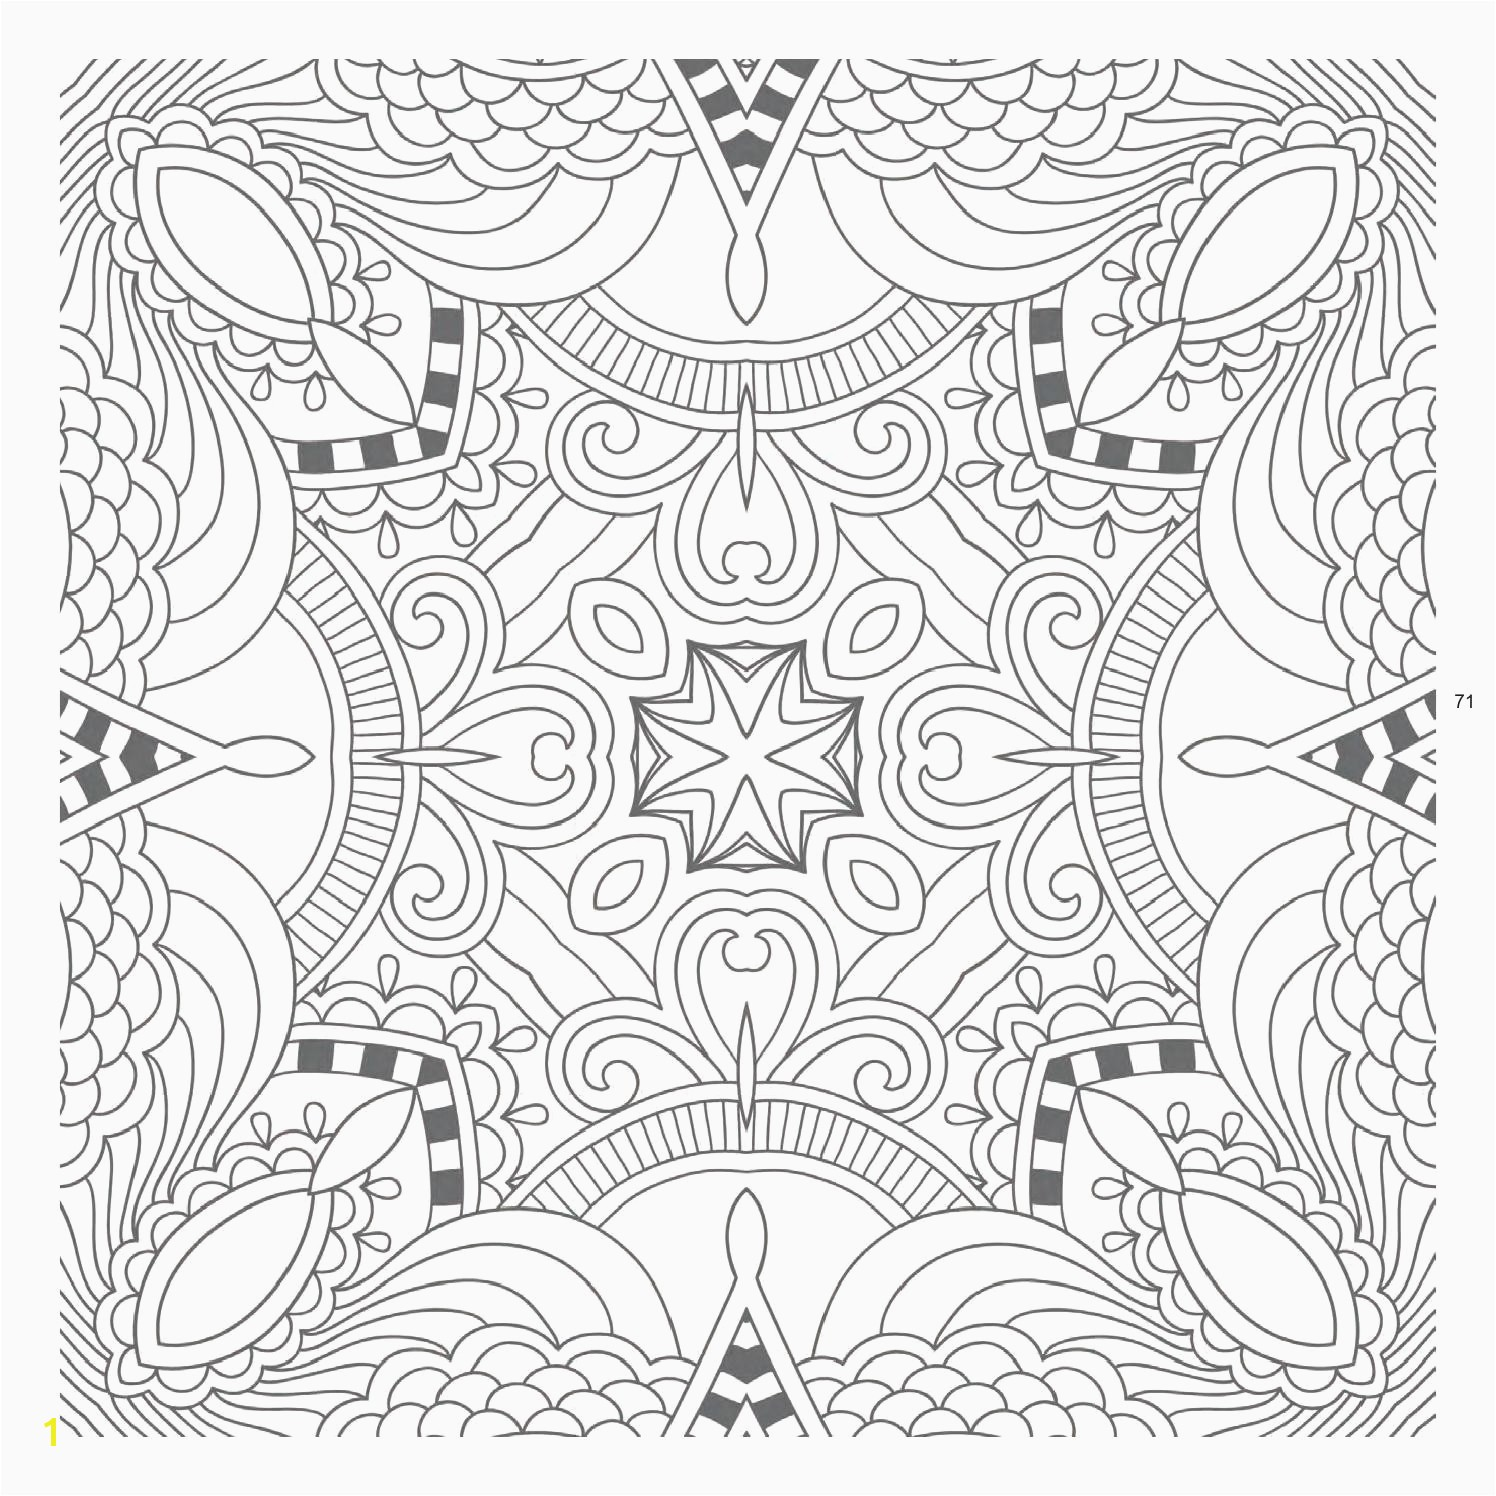 Coloring Pages Kids Inspirational Coloring Book Pages Awesome sol R Coloring Pages Best 0d